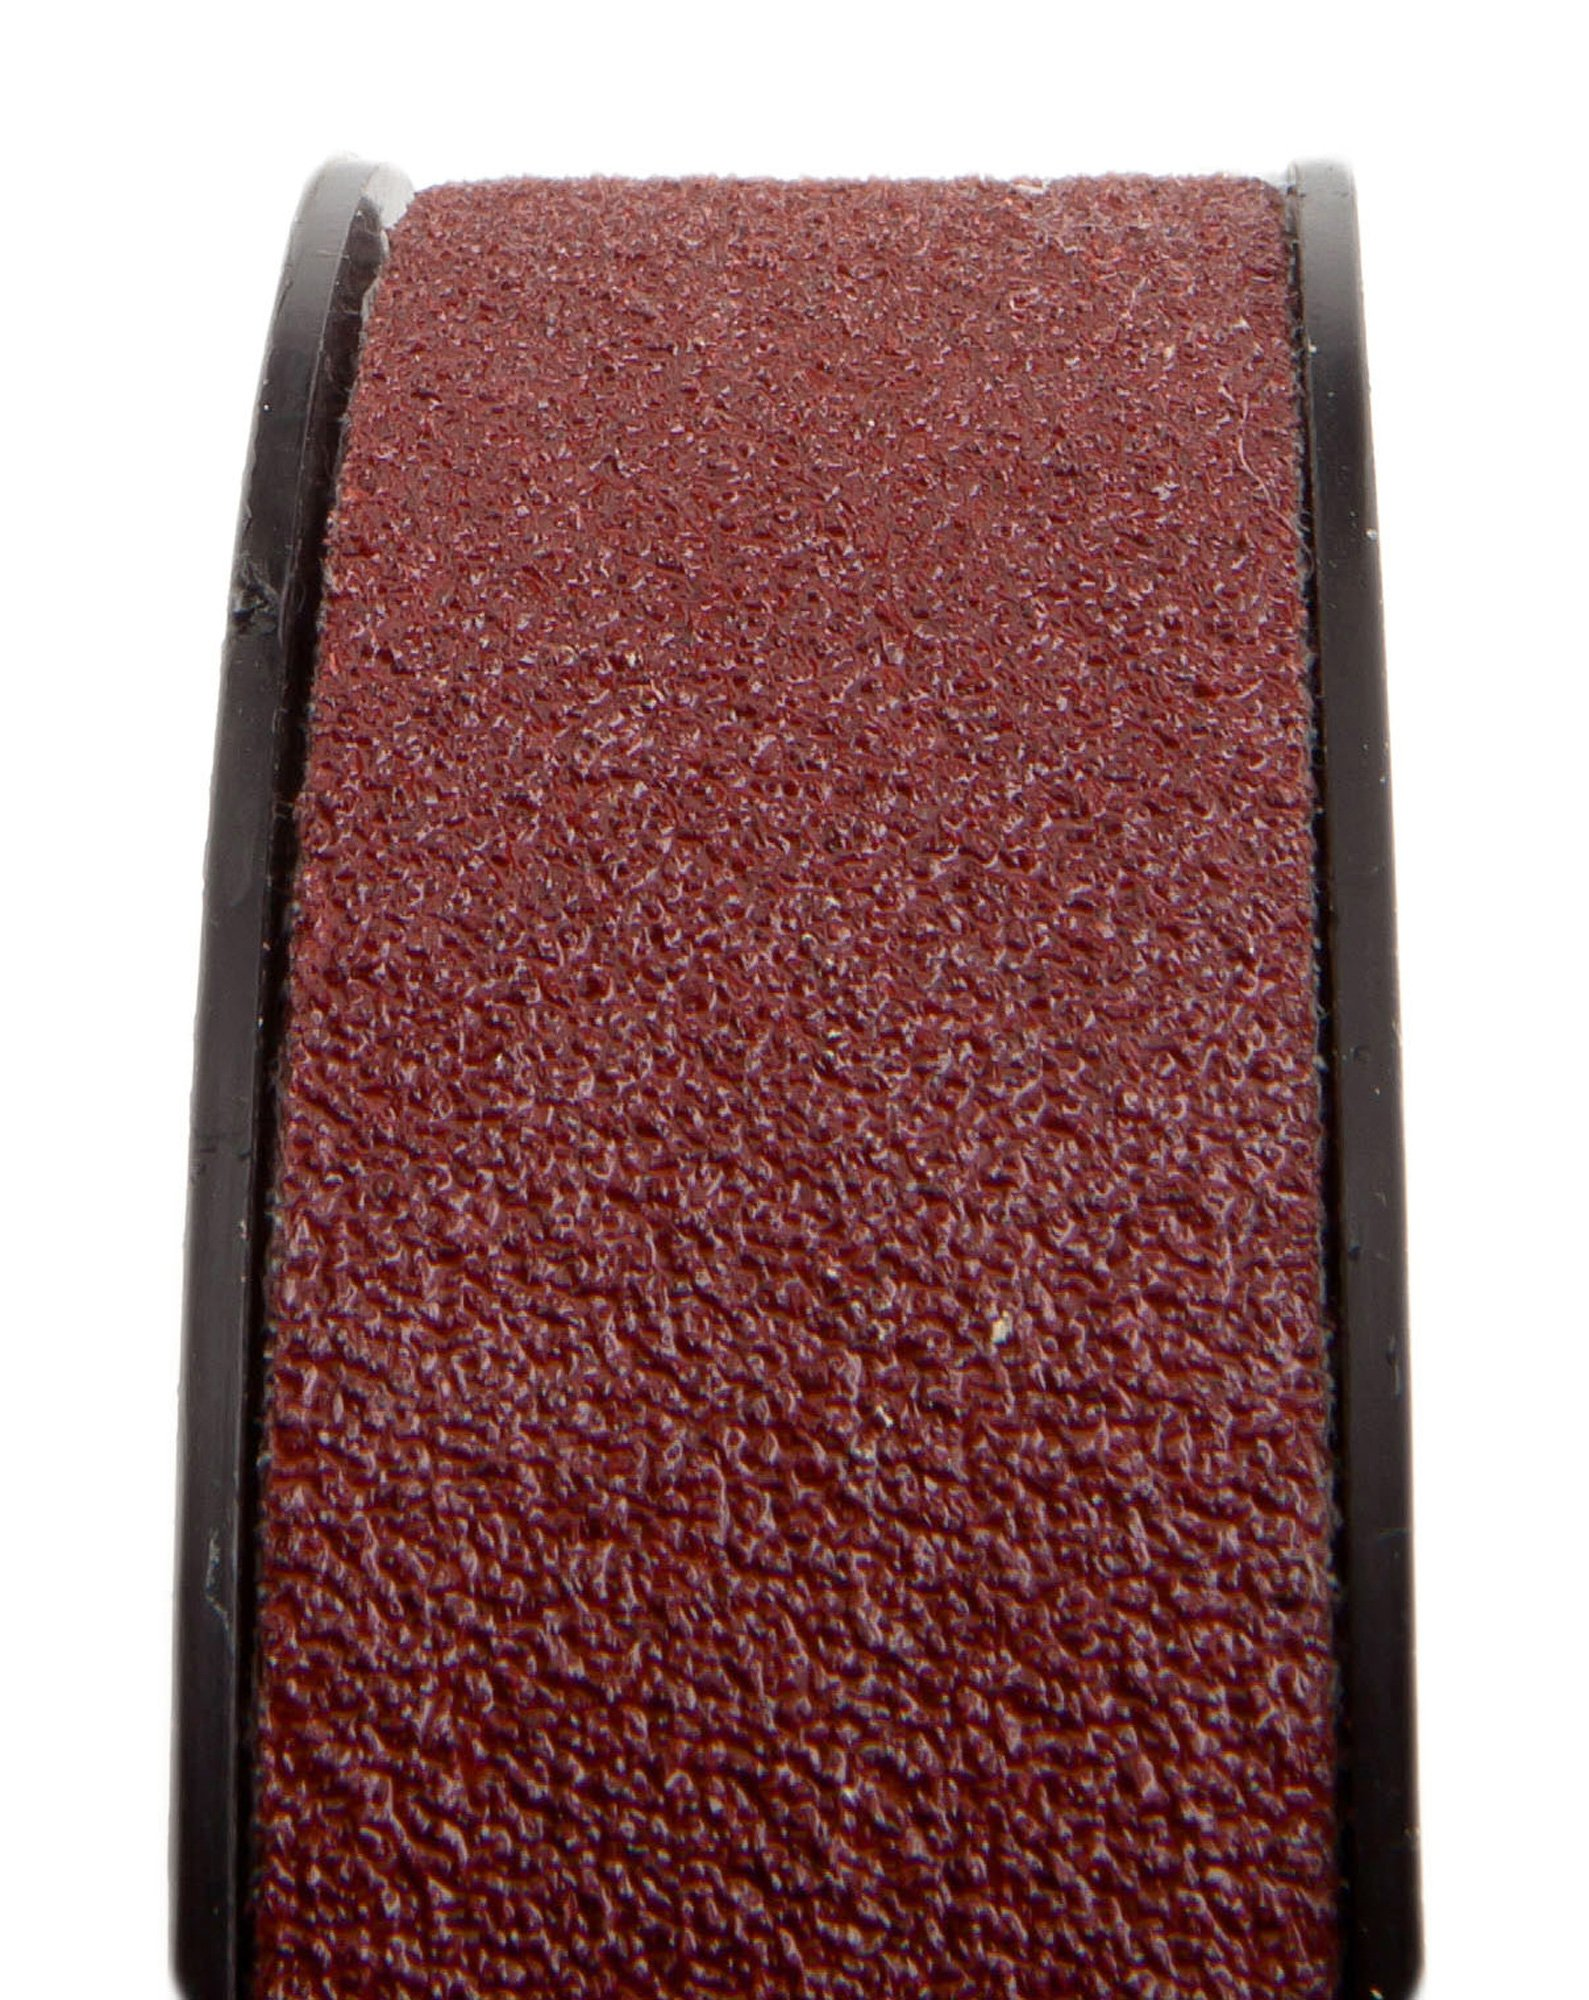 Forney 71803 Emery Cloth, 80-Grit, 1-Inch-by-10-Yard Bench Roll by Forney (Image #3)